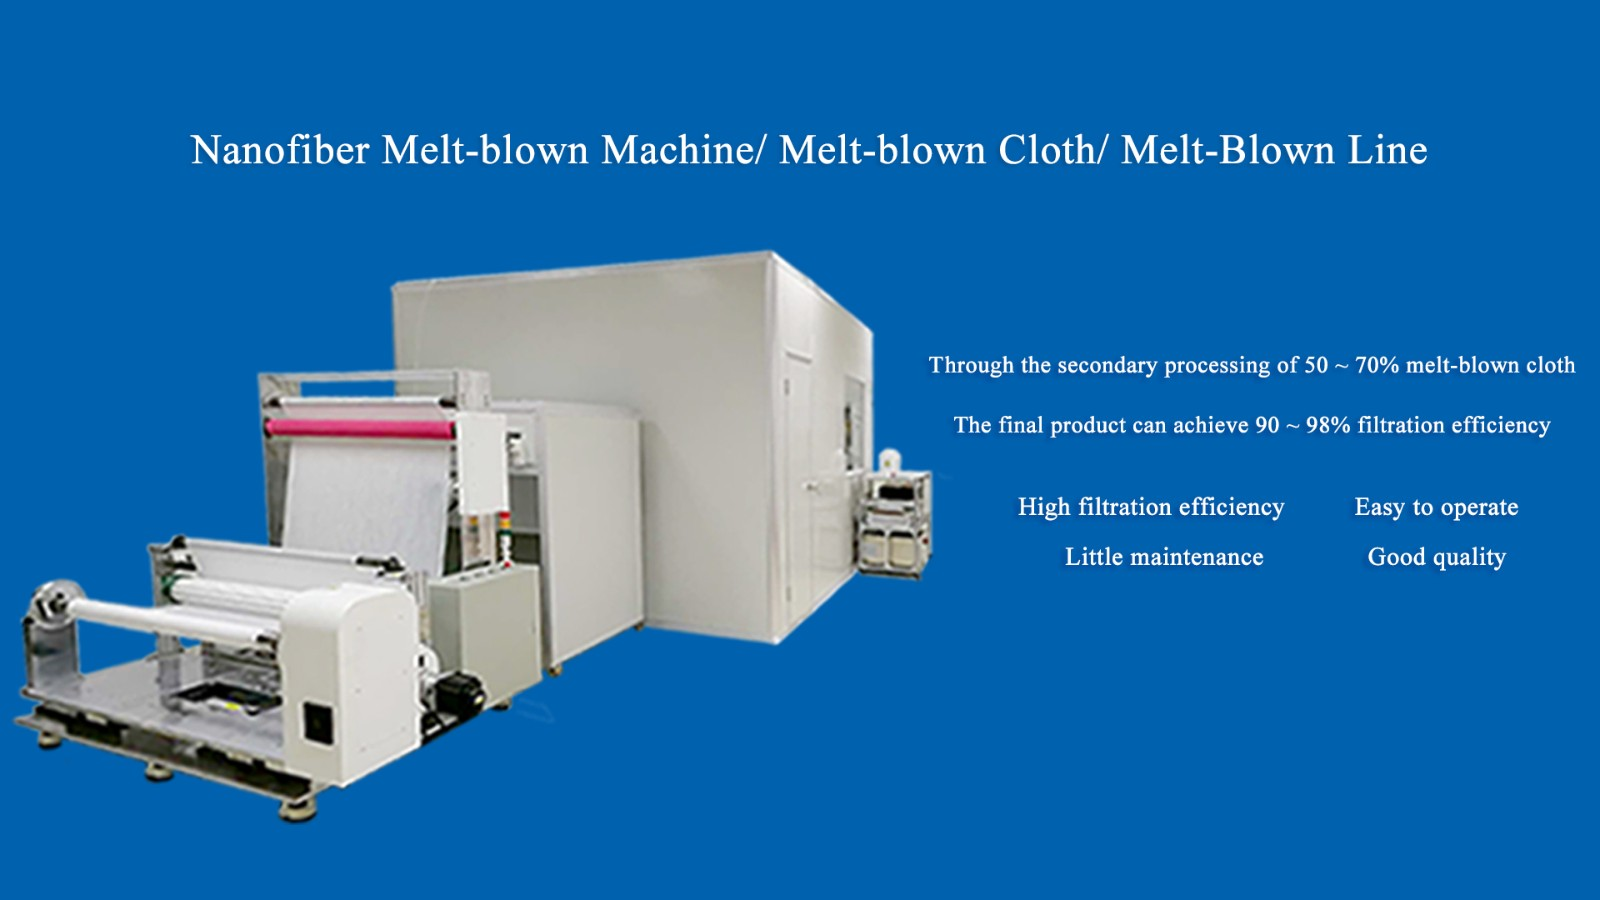 N99 Nanofiber Melt-blown Machine/Melt-blown Cloth/Melt-blown Line